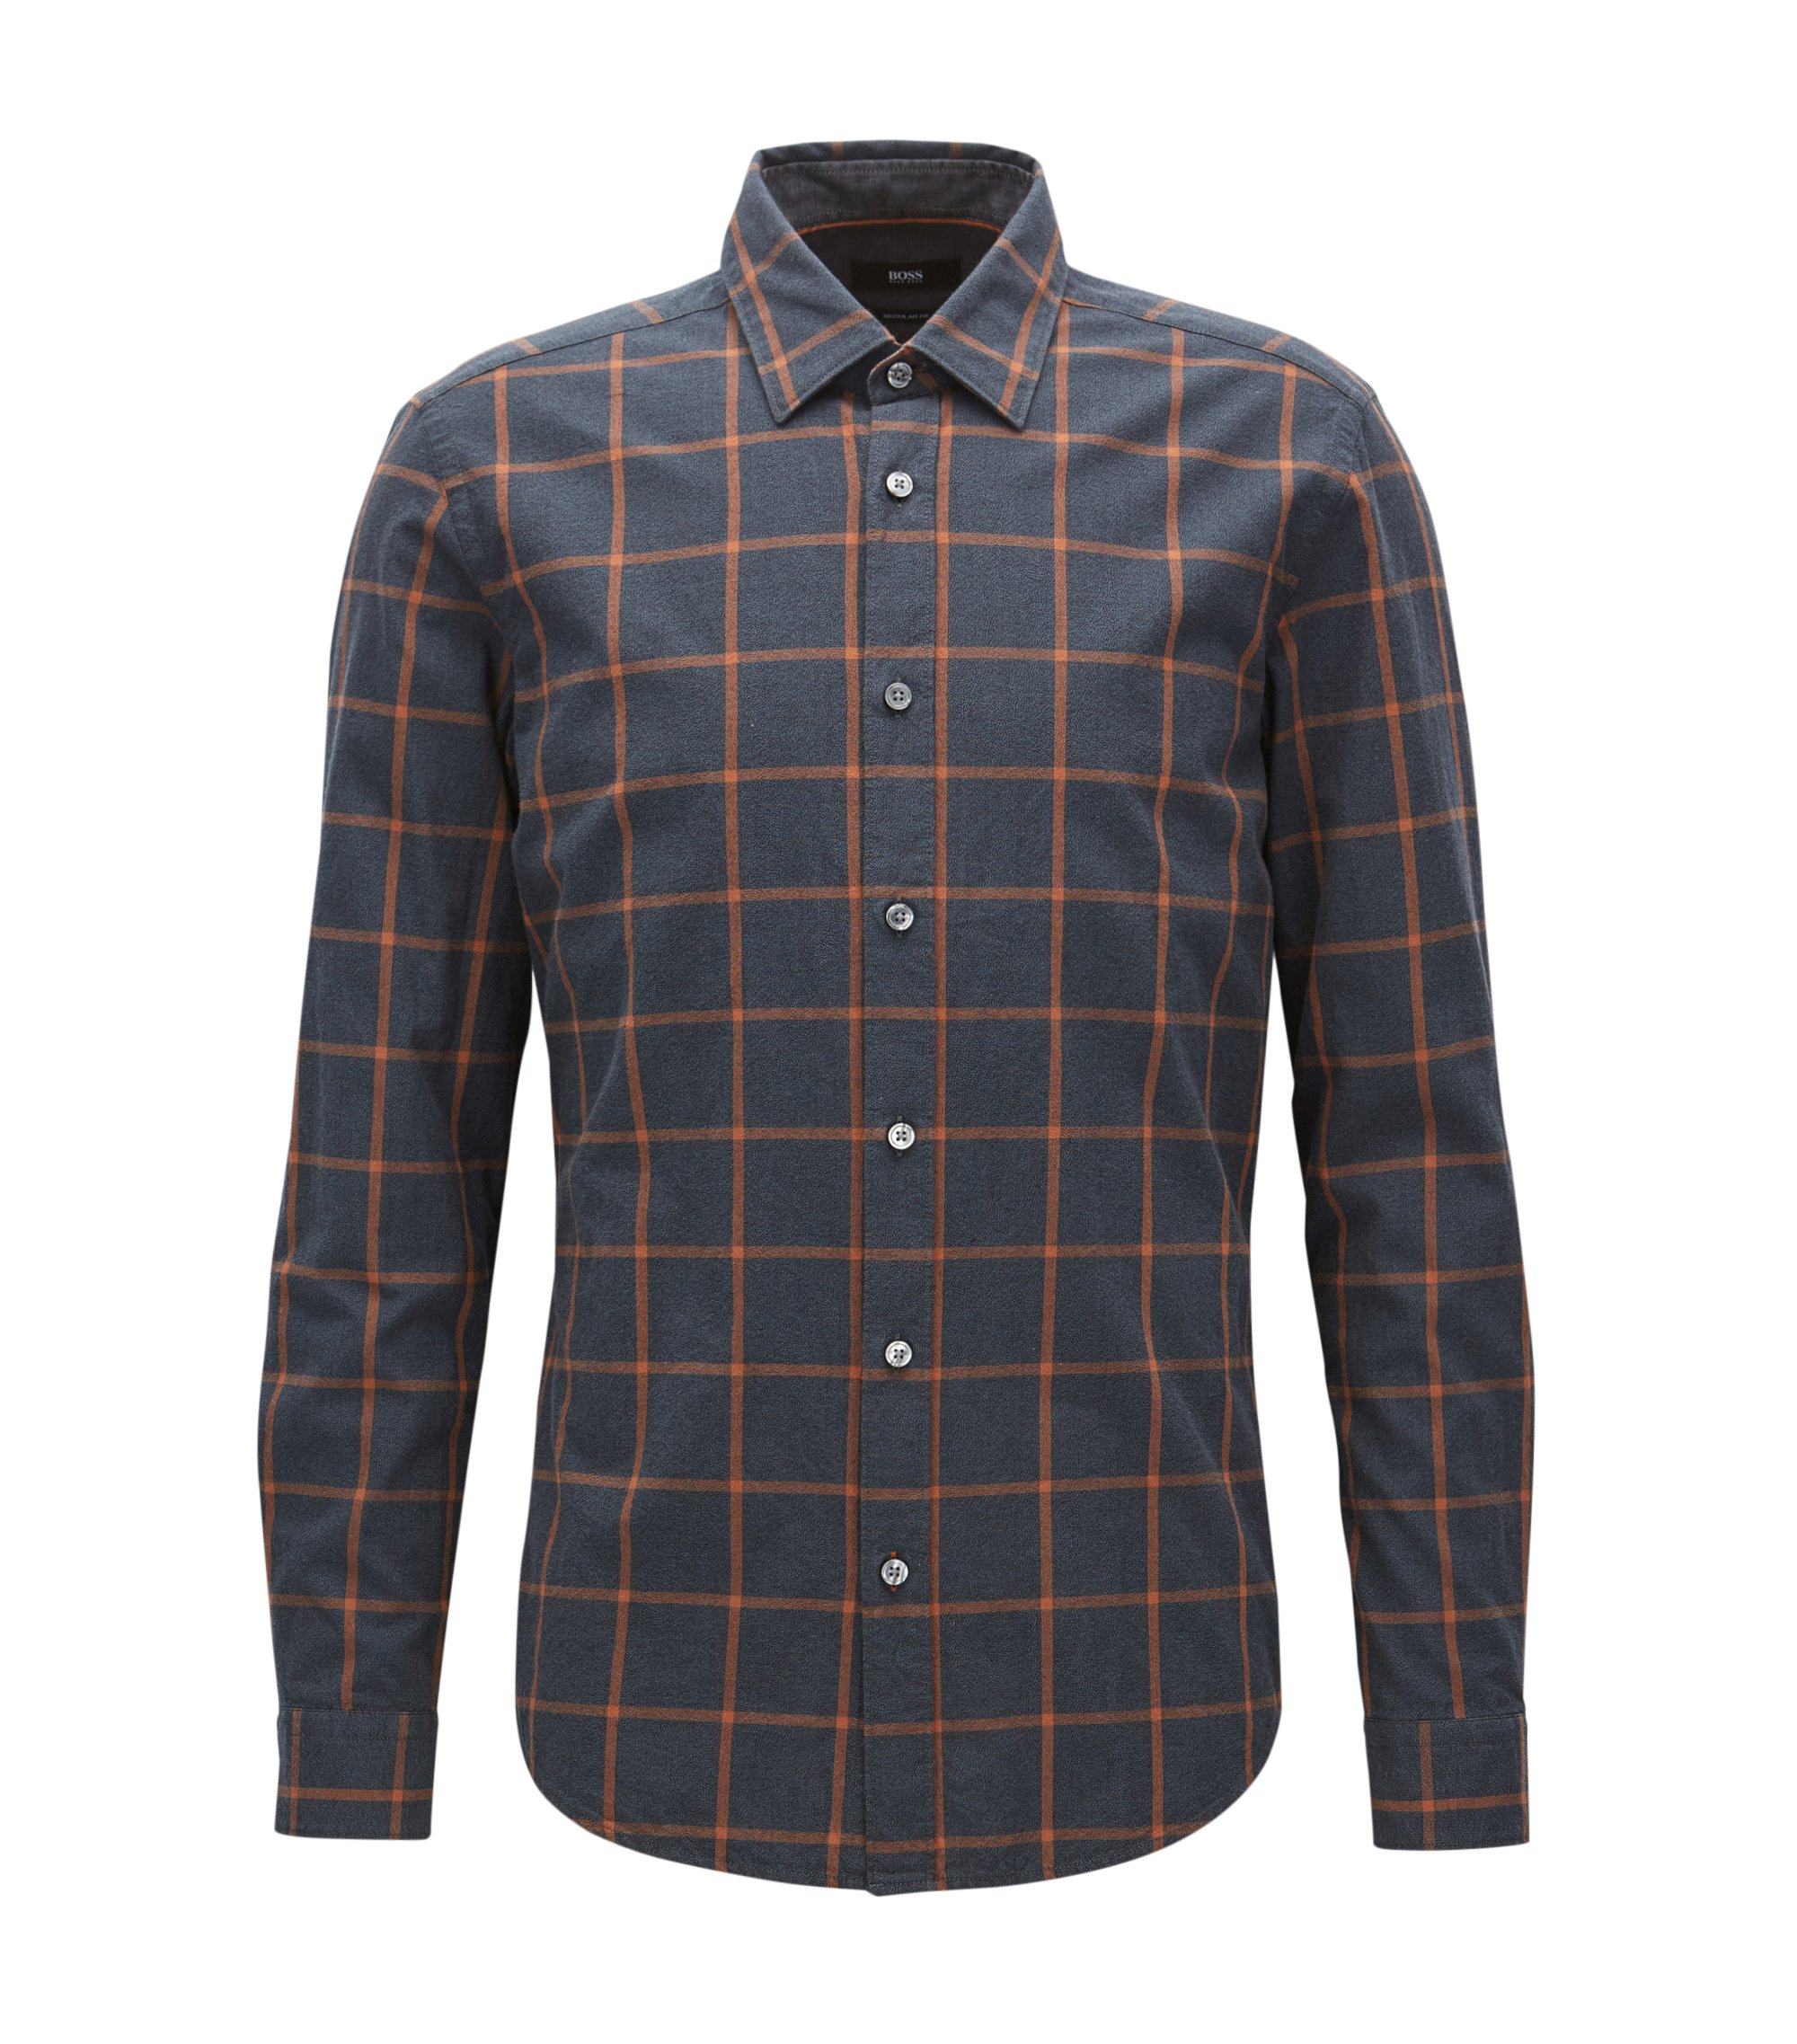 Windowpane Cotton Button Down Shirt, Regular Fit | Lukas, Brown